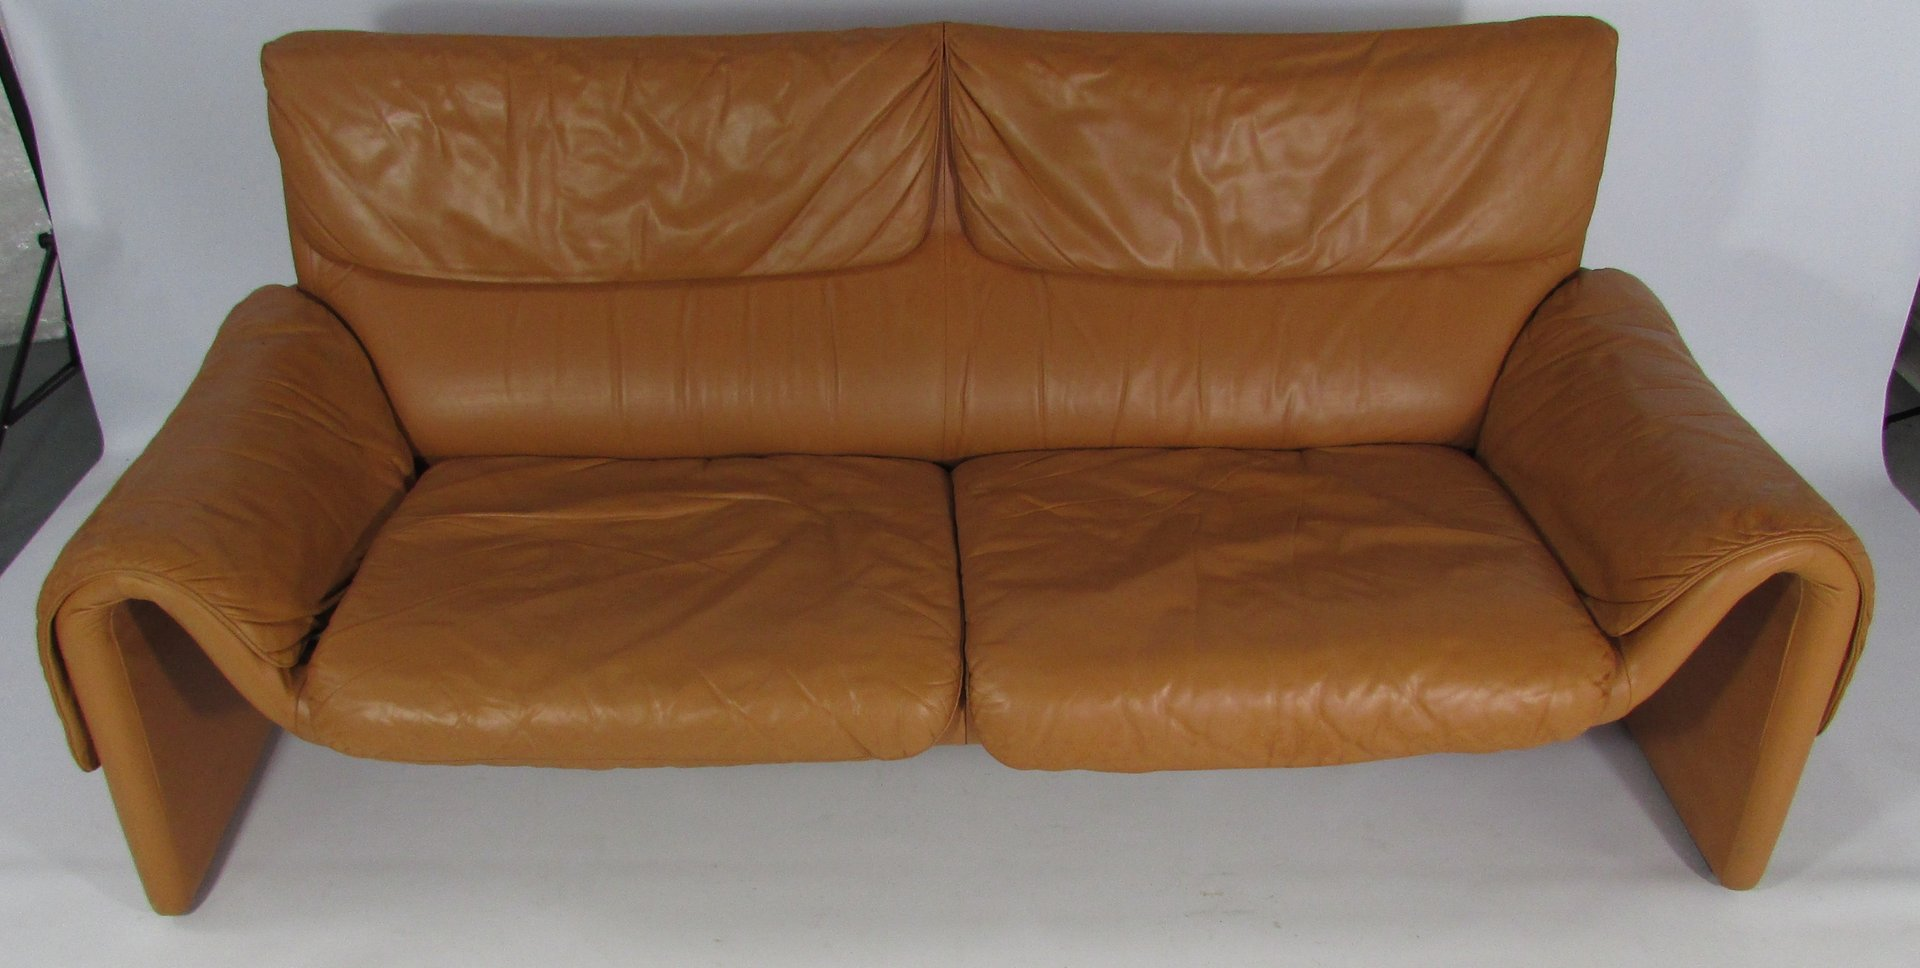 Model ds 2011 tan leather sofa from de sede for sale at pamono for Tan couches for sale